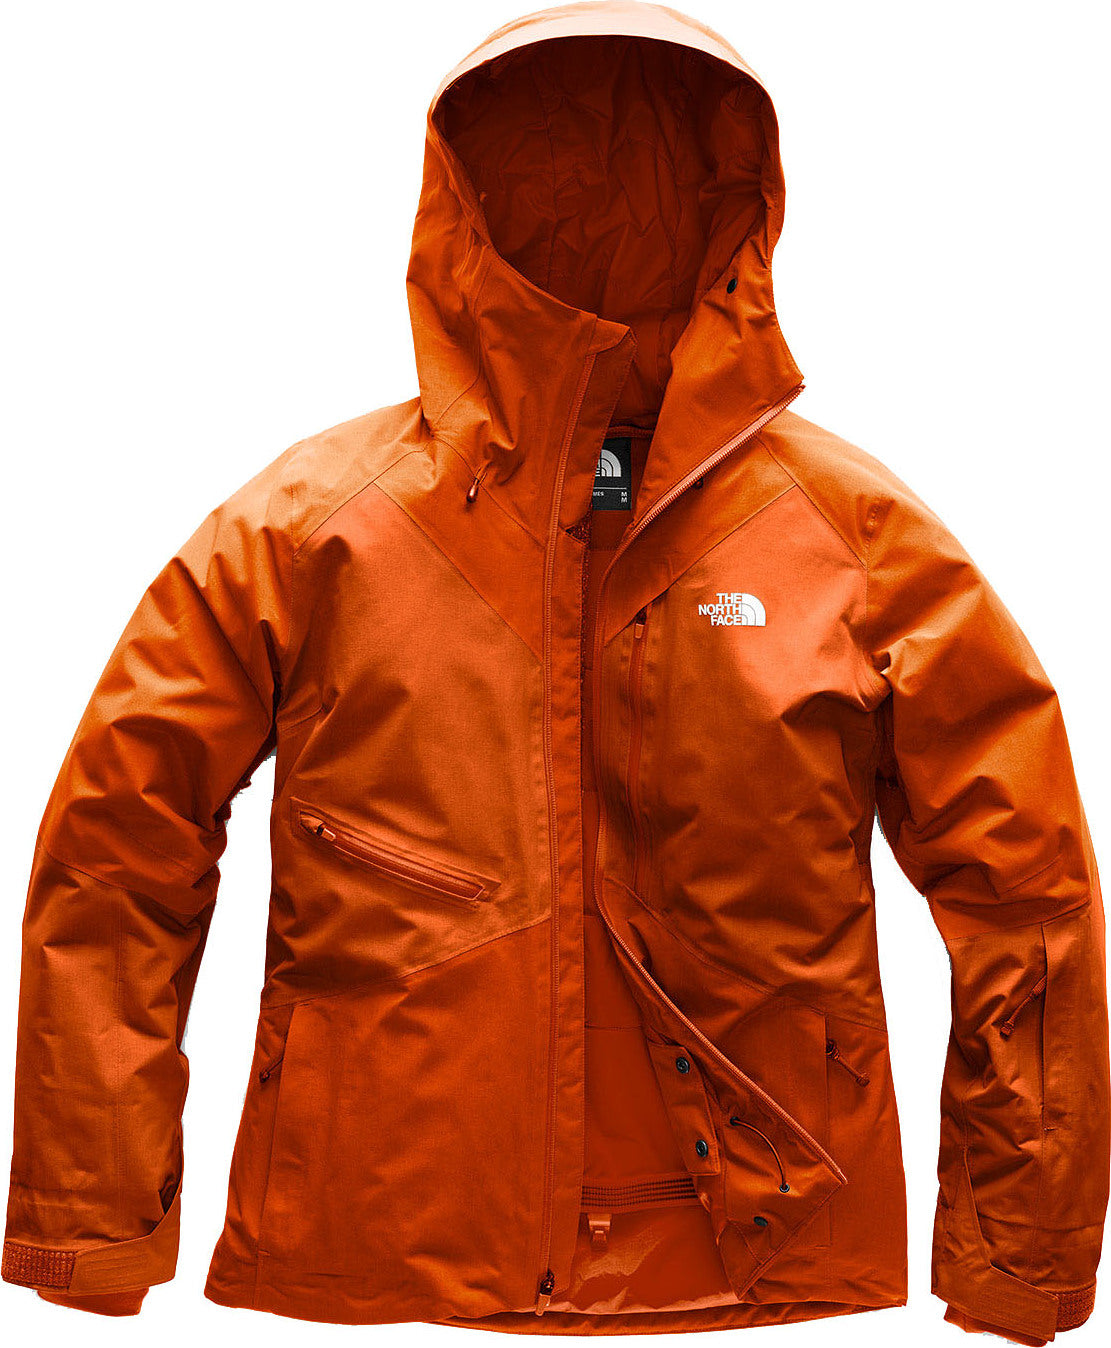 c4b7e207b75a The North Face Lostrail Jacket - Women s